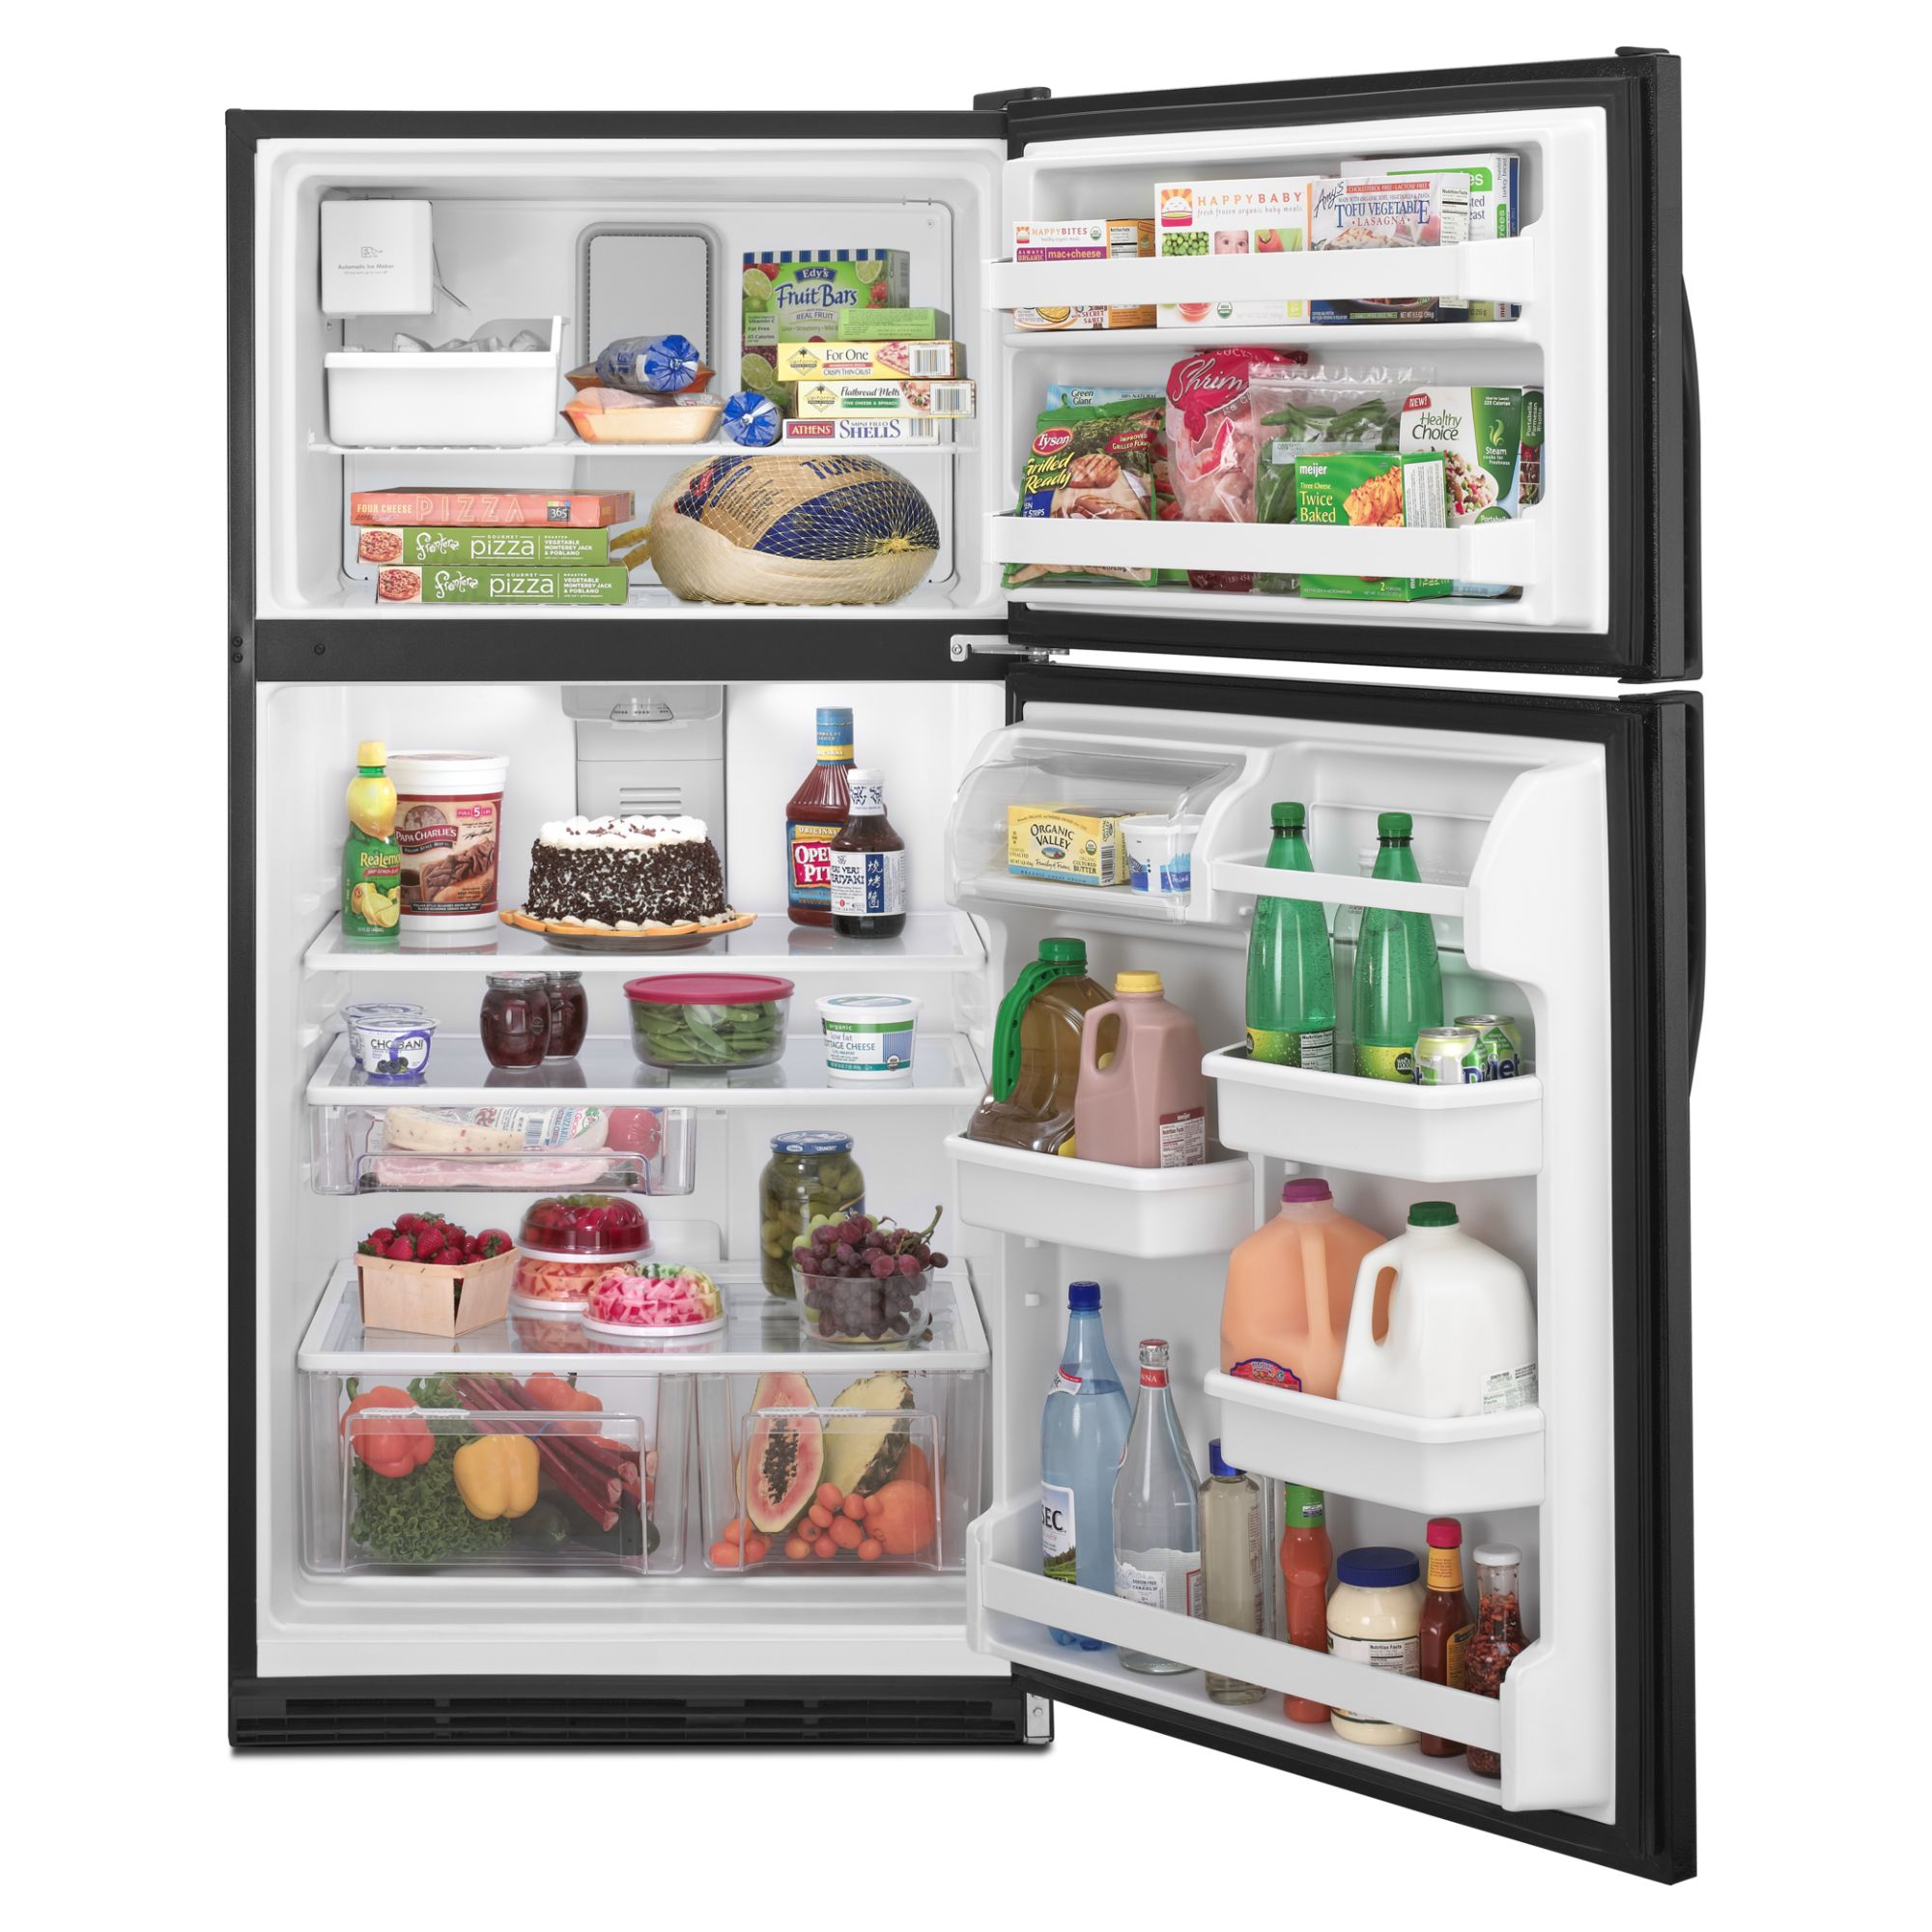 Maytag 20.6 cu. ft. Top-Freezer Refrigerator w/ FreshLock™ Crispers - Black